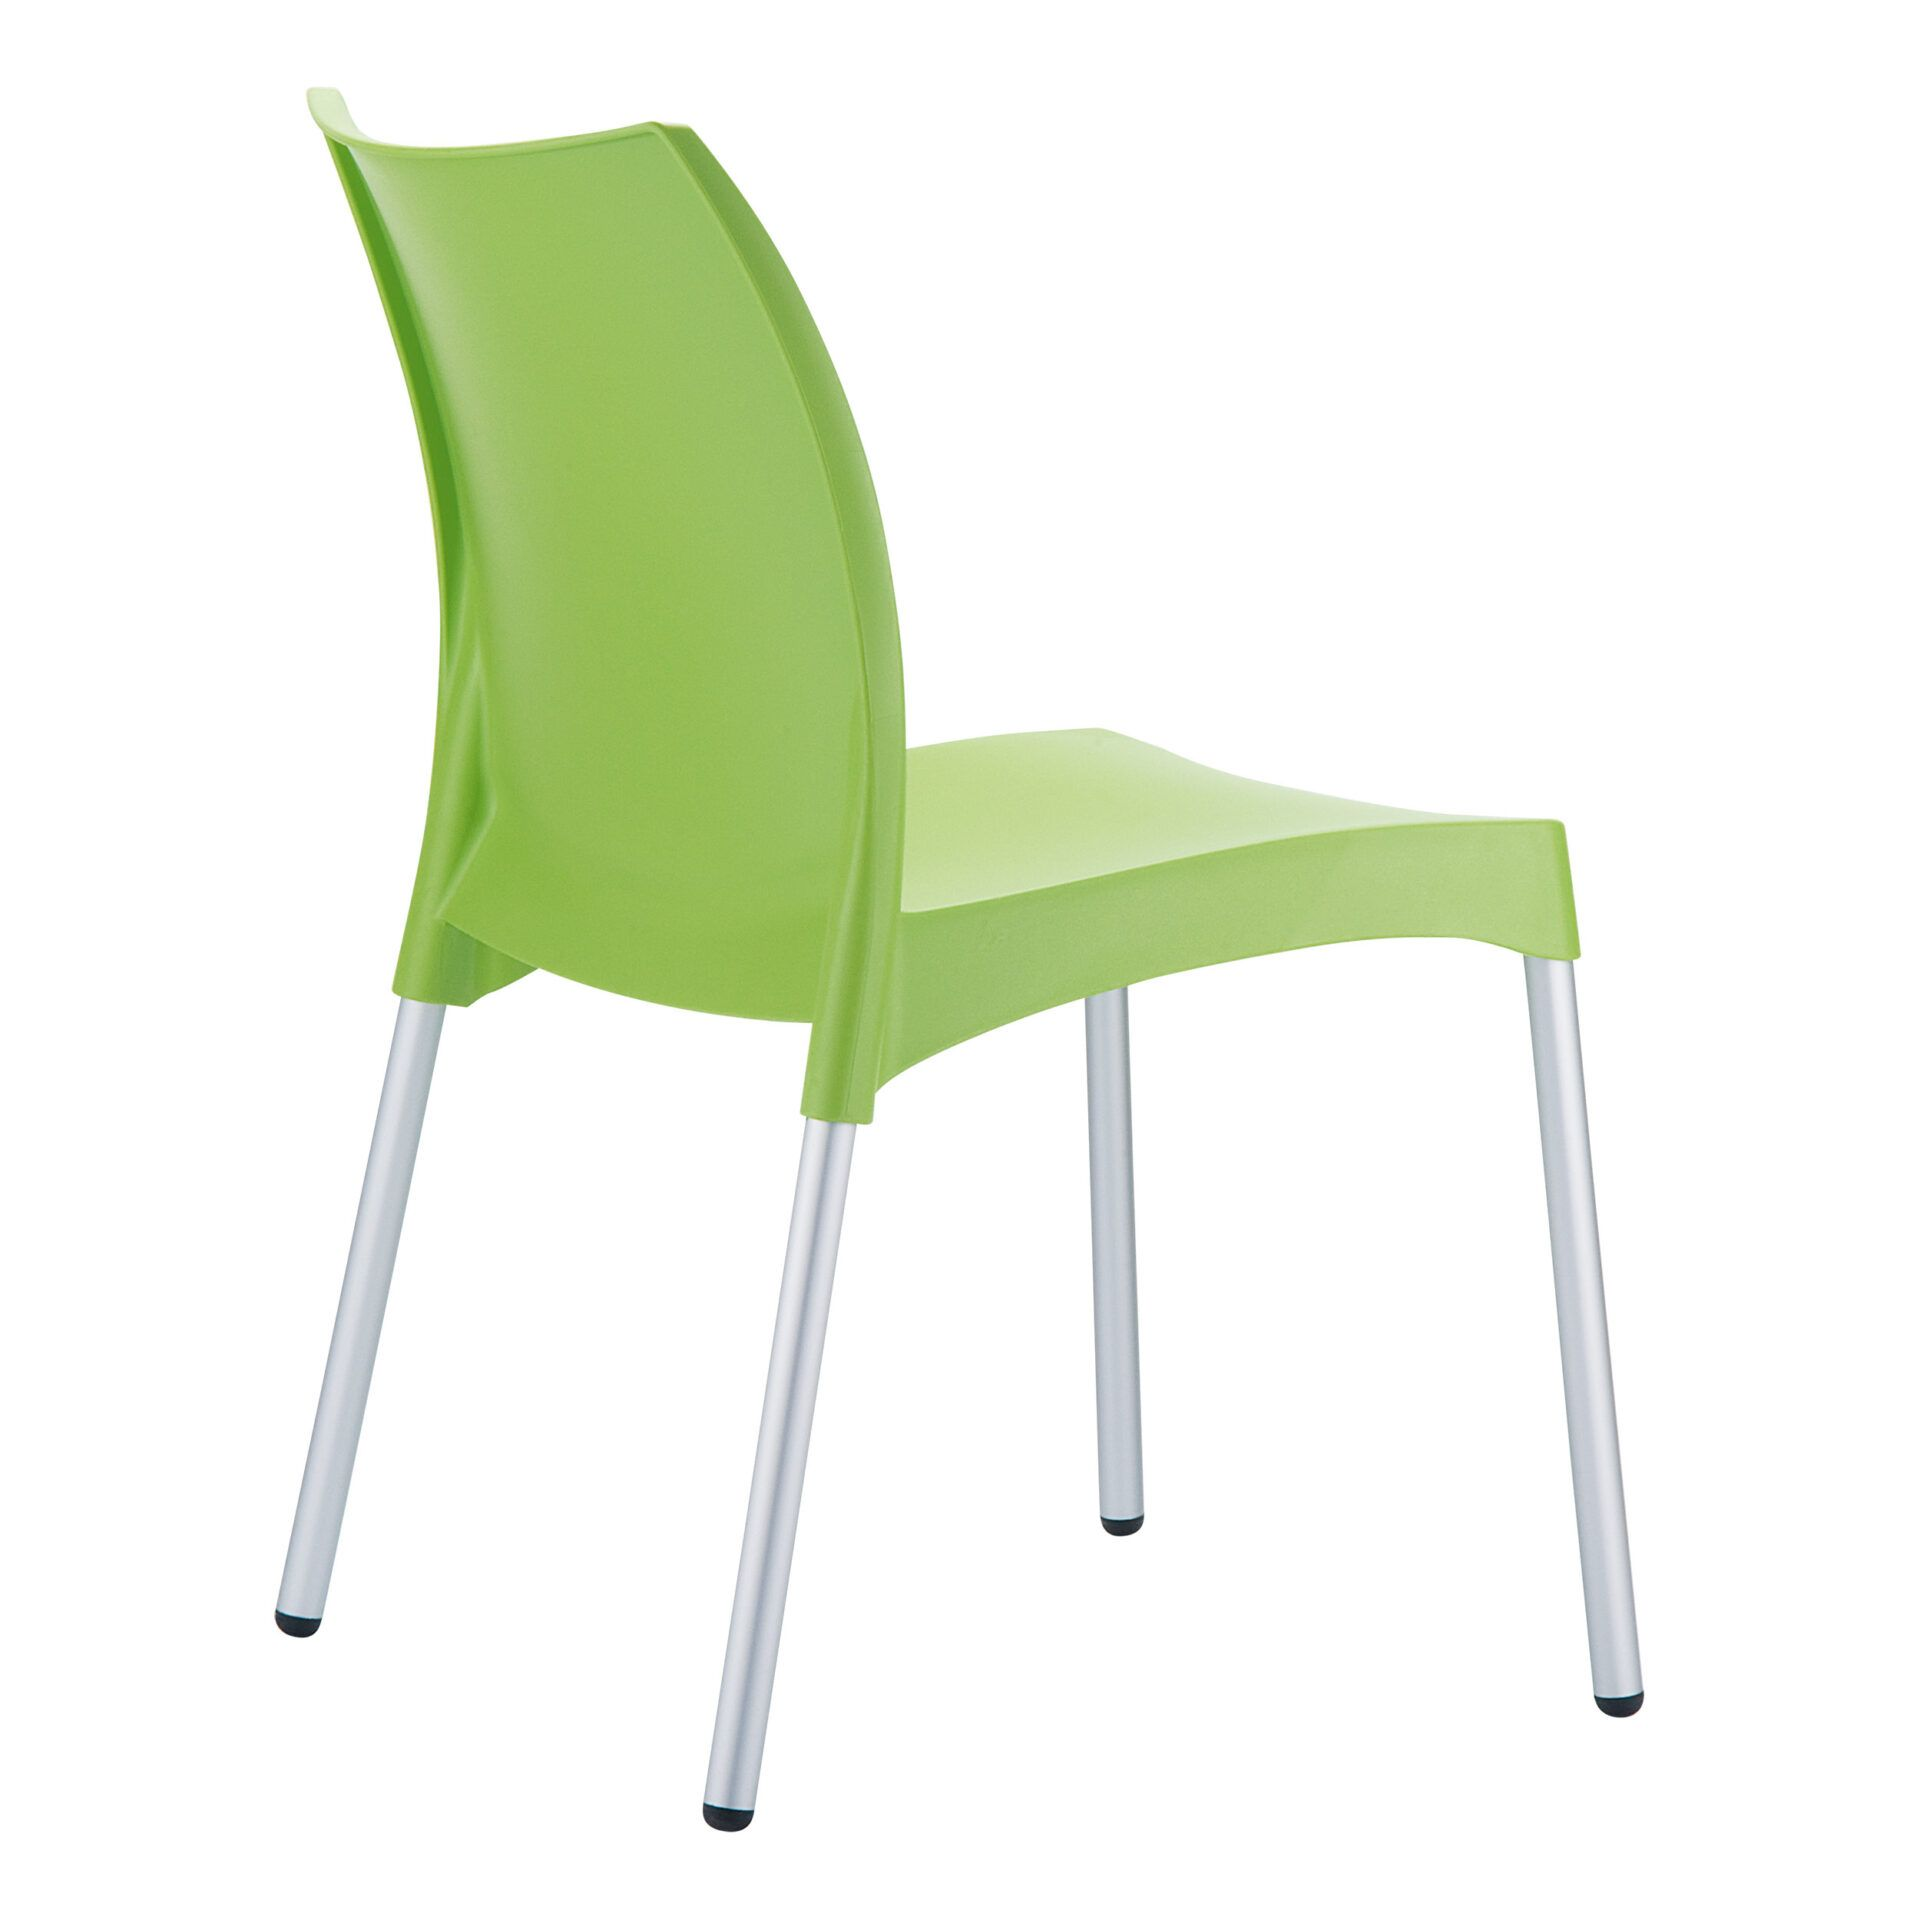 commercial outdoor hospitality seating vita chair green back side